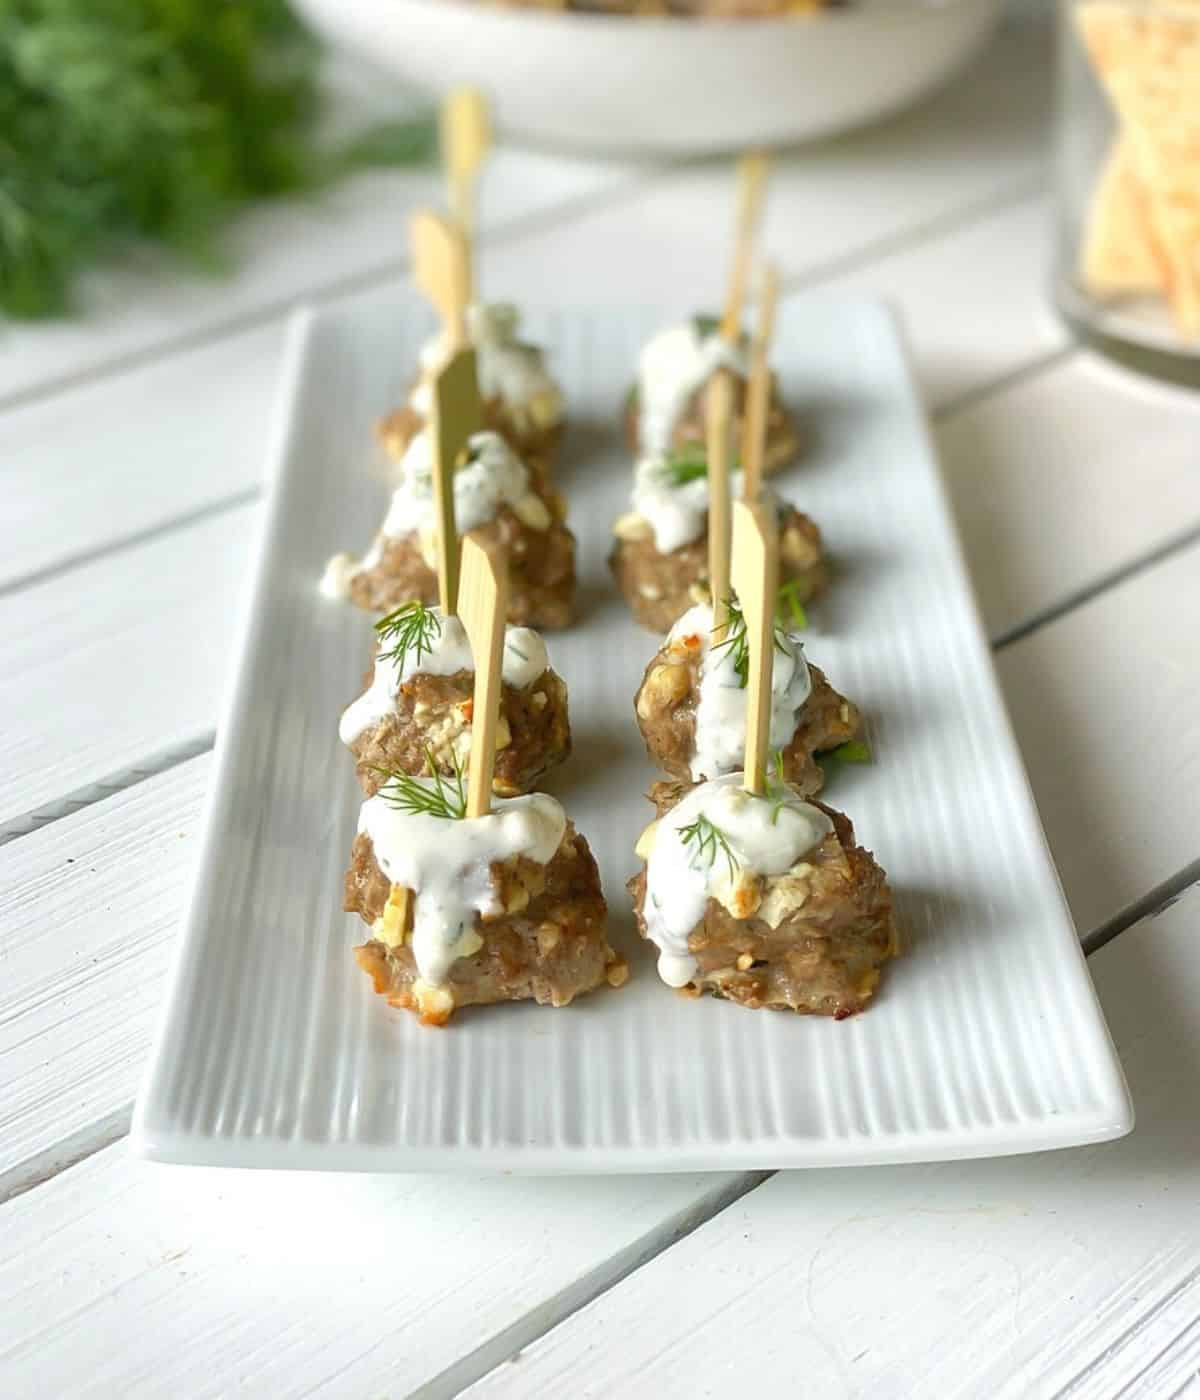 Skewered lamb and feta cheese meatballs on a plate with tzatziki sauce.